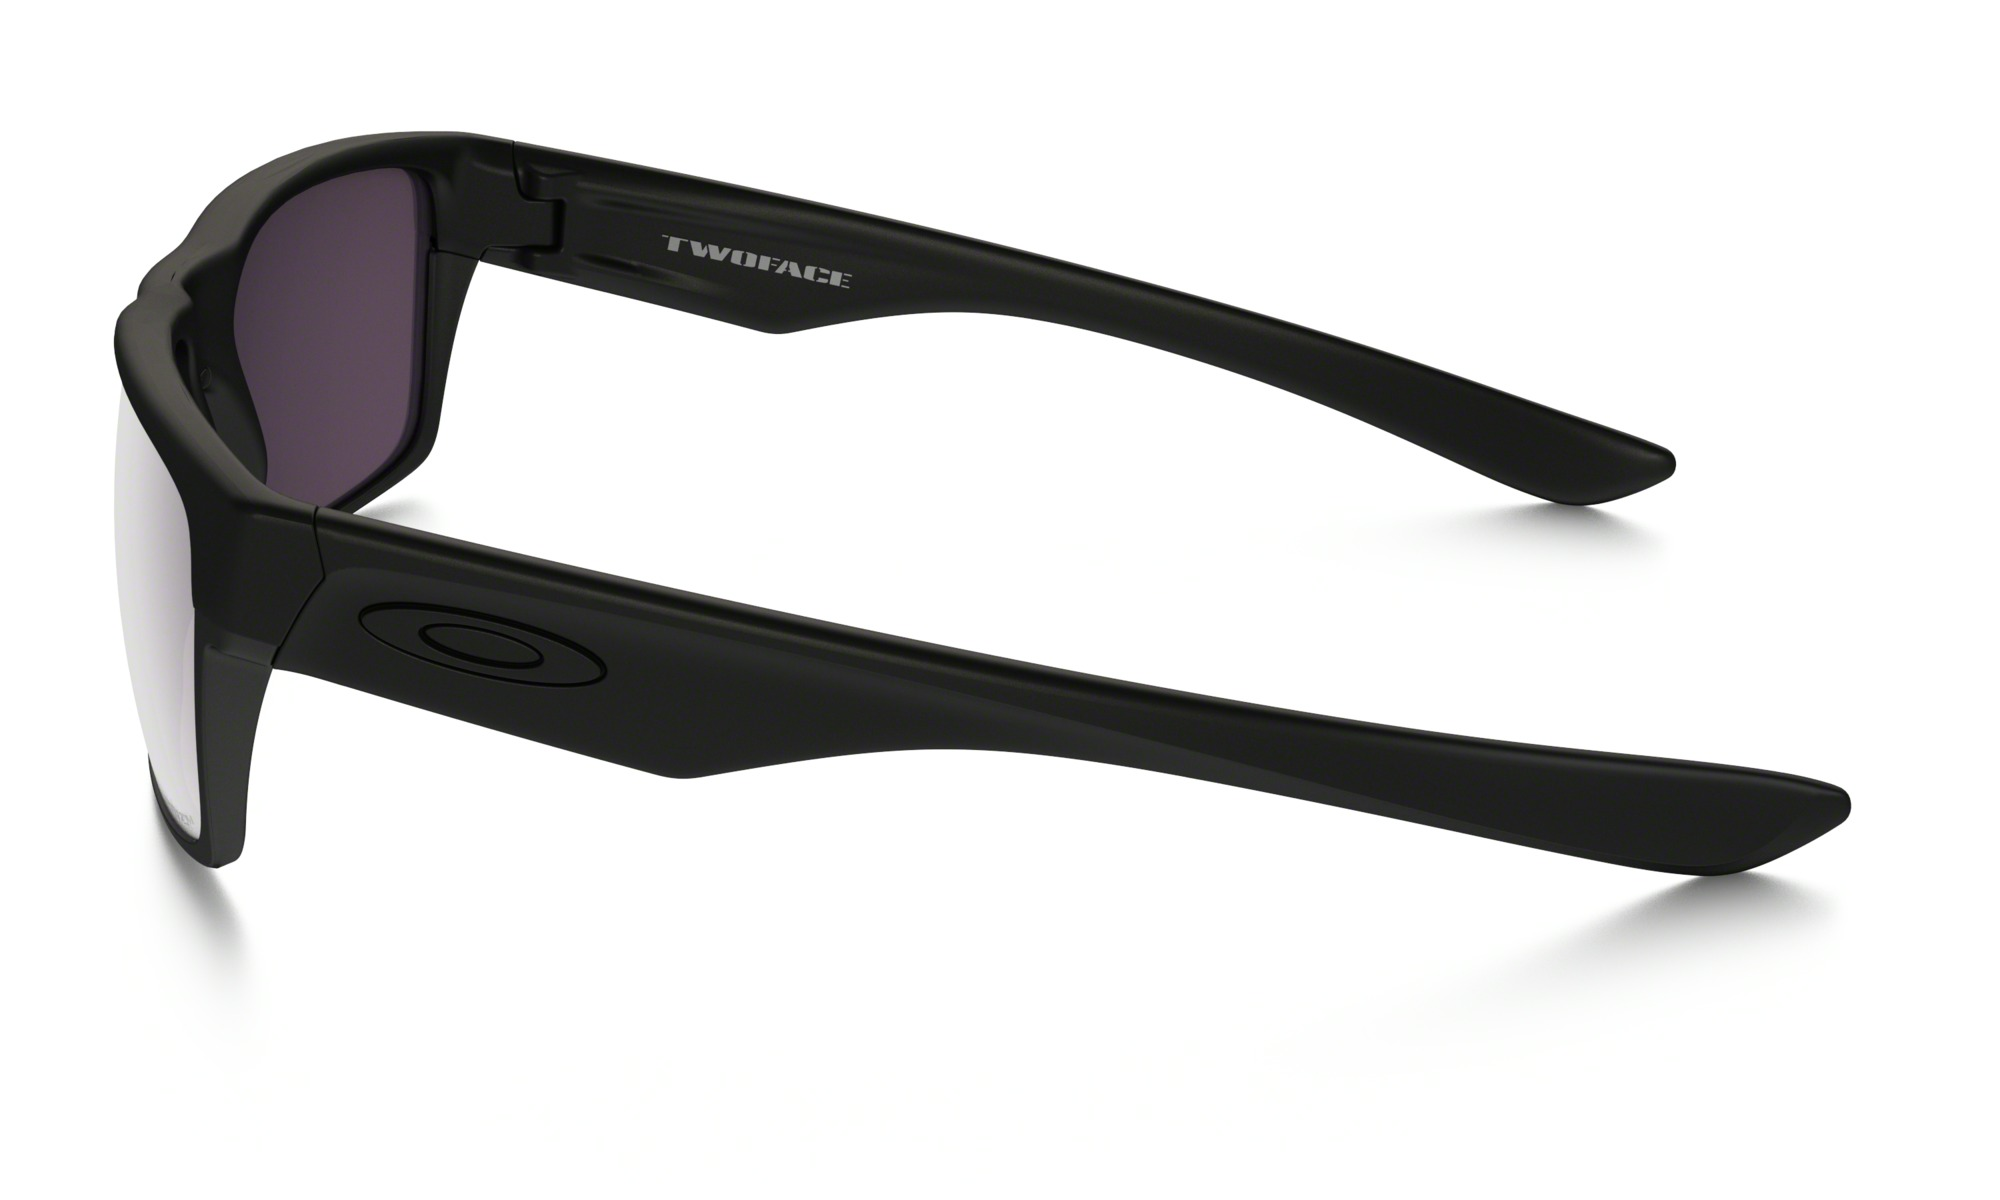 c58ef97941 Home · Eyewear · Oakley · TWO FACE  TWO FACE MATTE BLACK   PRIZM DAILY  POLARIZED COVERT COLLECTION. 🔍. R 2